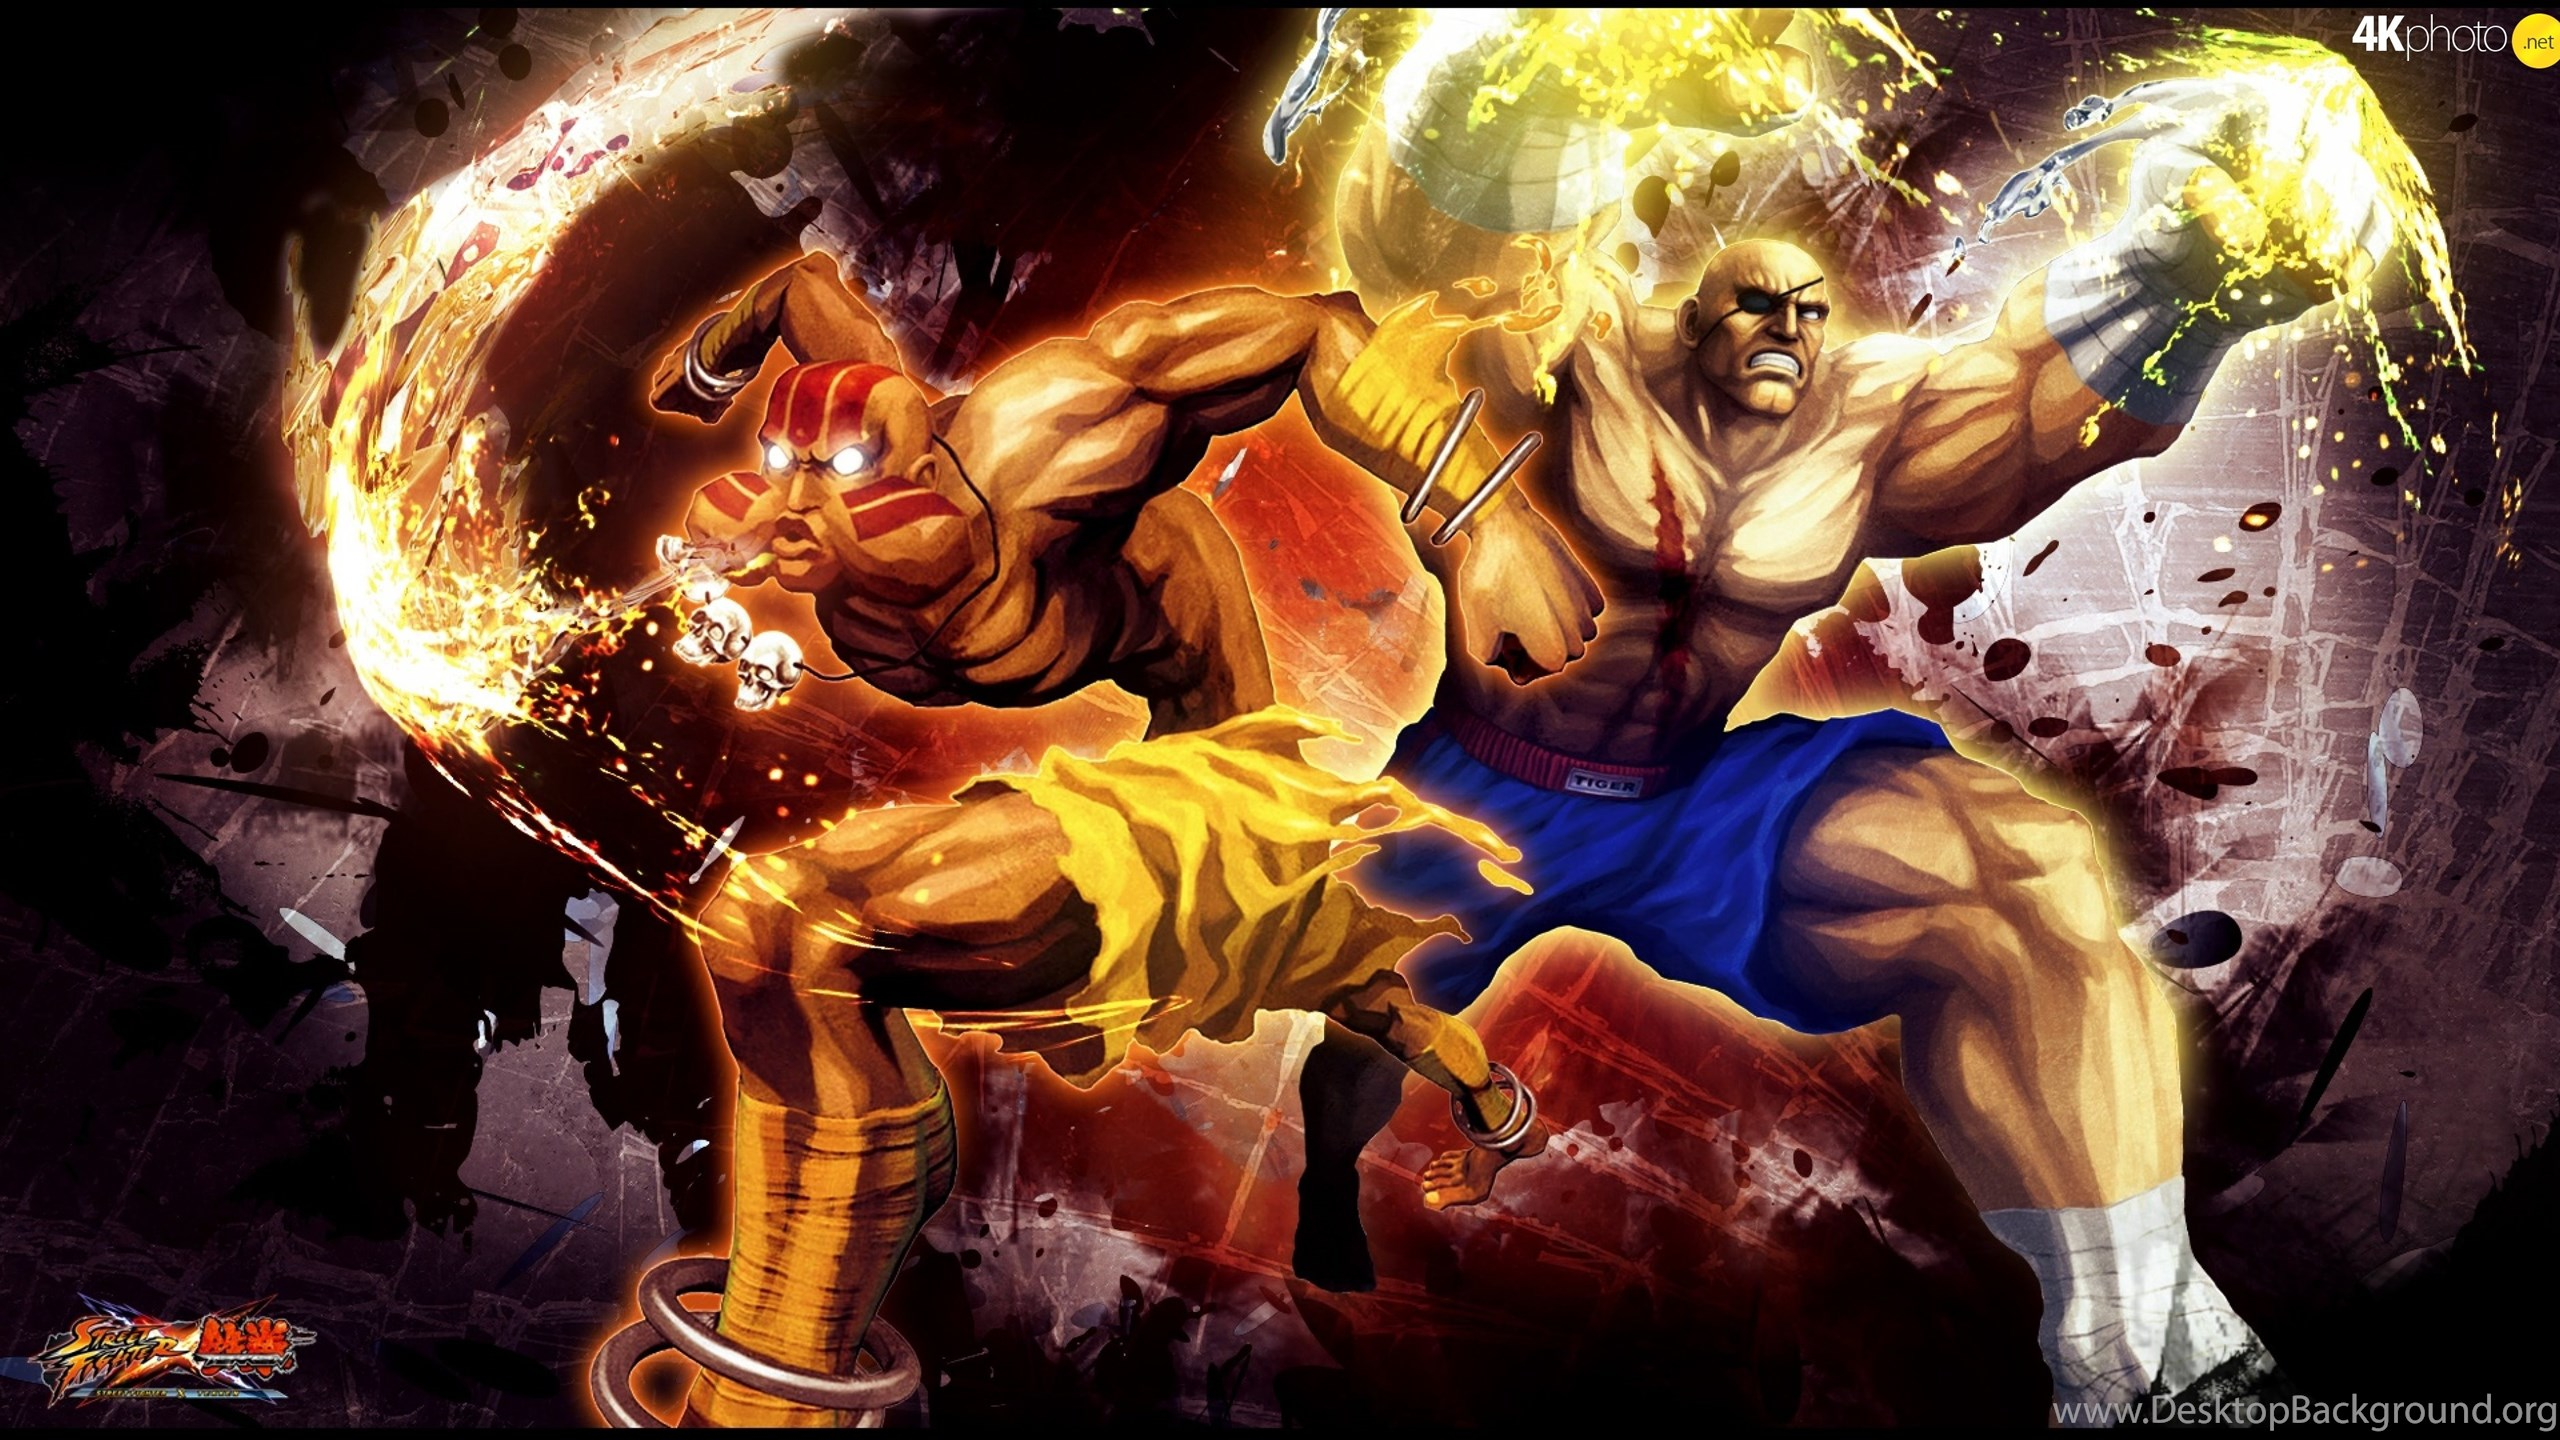 Sagat Street Fighter X Tekken Dalsim Puzzle Jigsaw Wallpapers